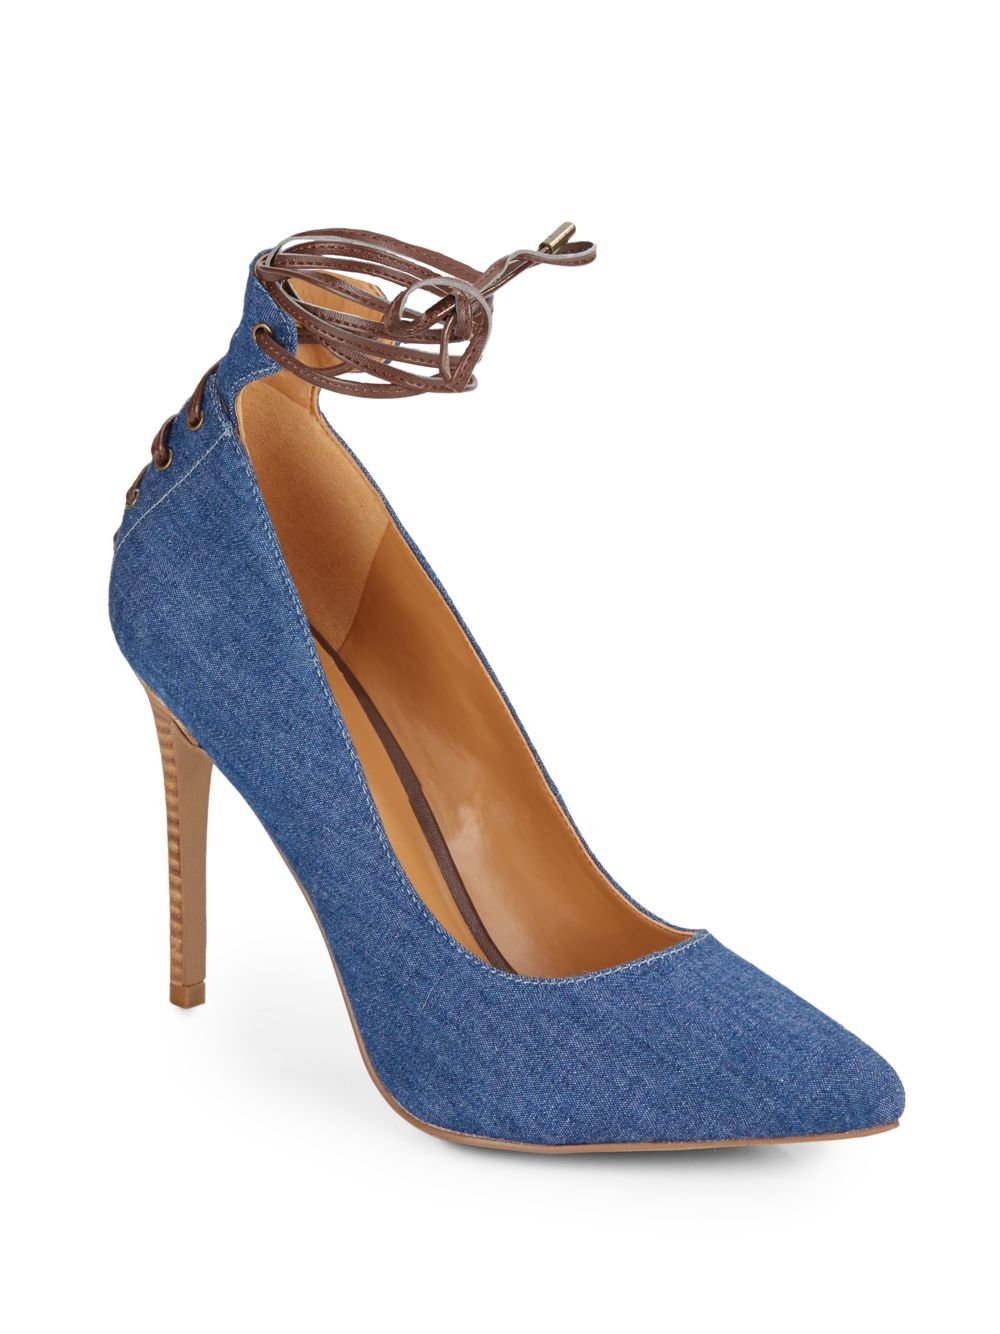 124602779bb Lyst - Nine West Ebba Denim Ankle-wrap Pumps in Blue